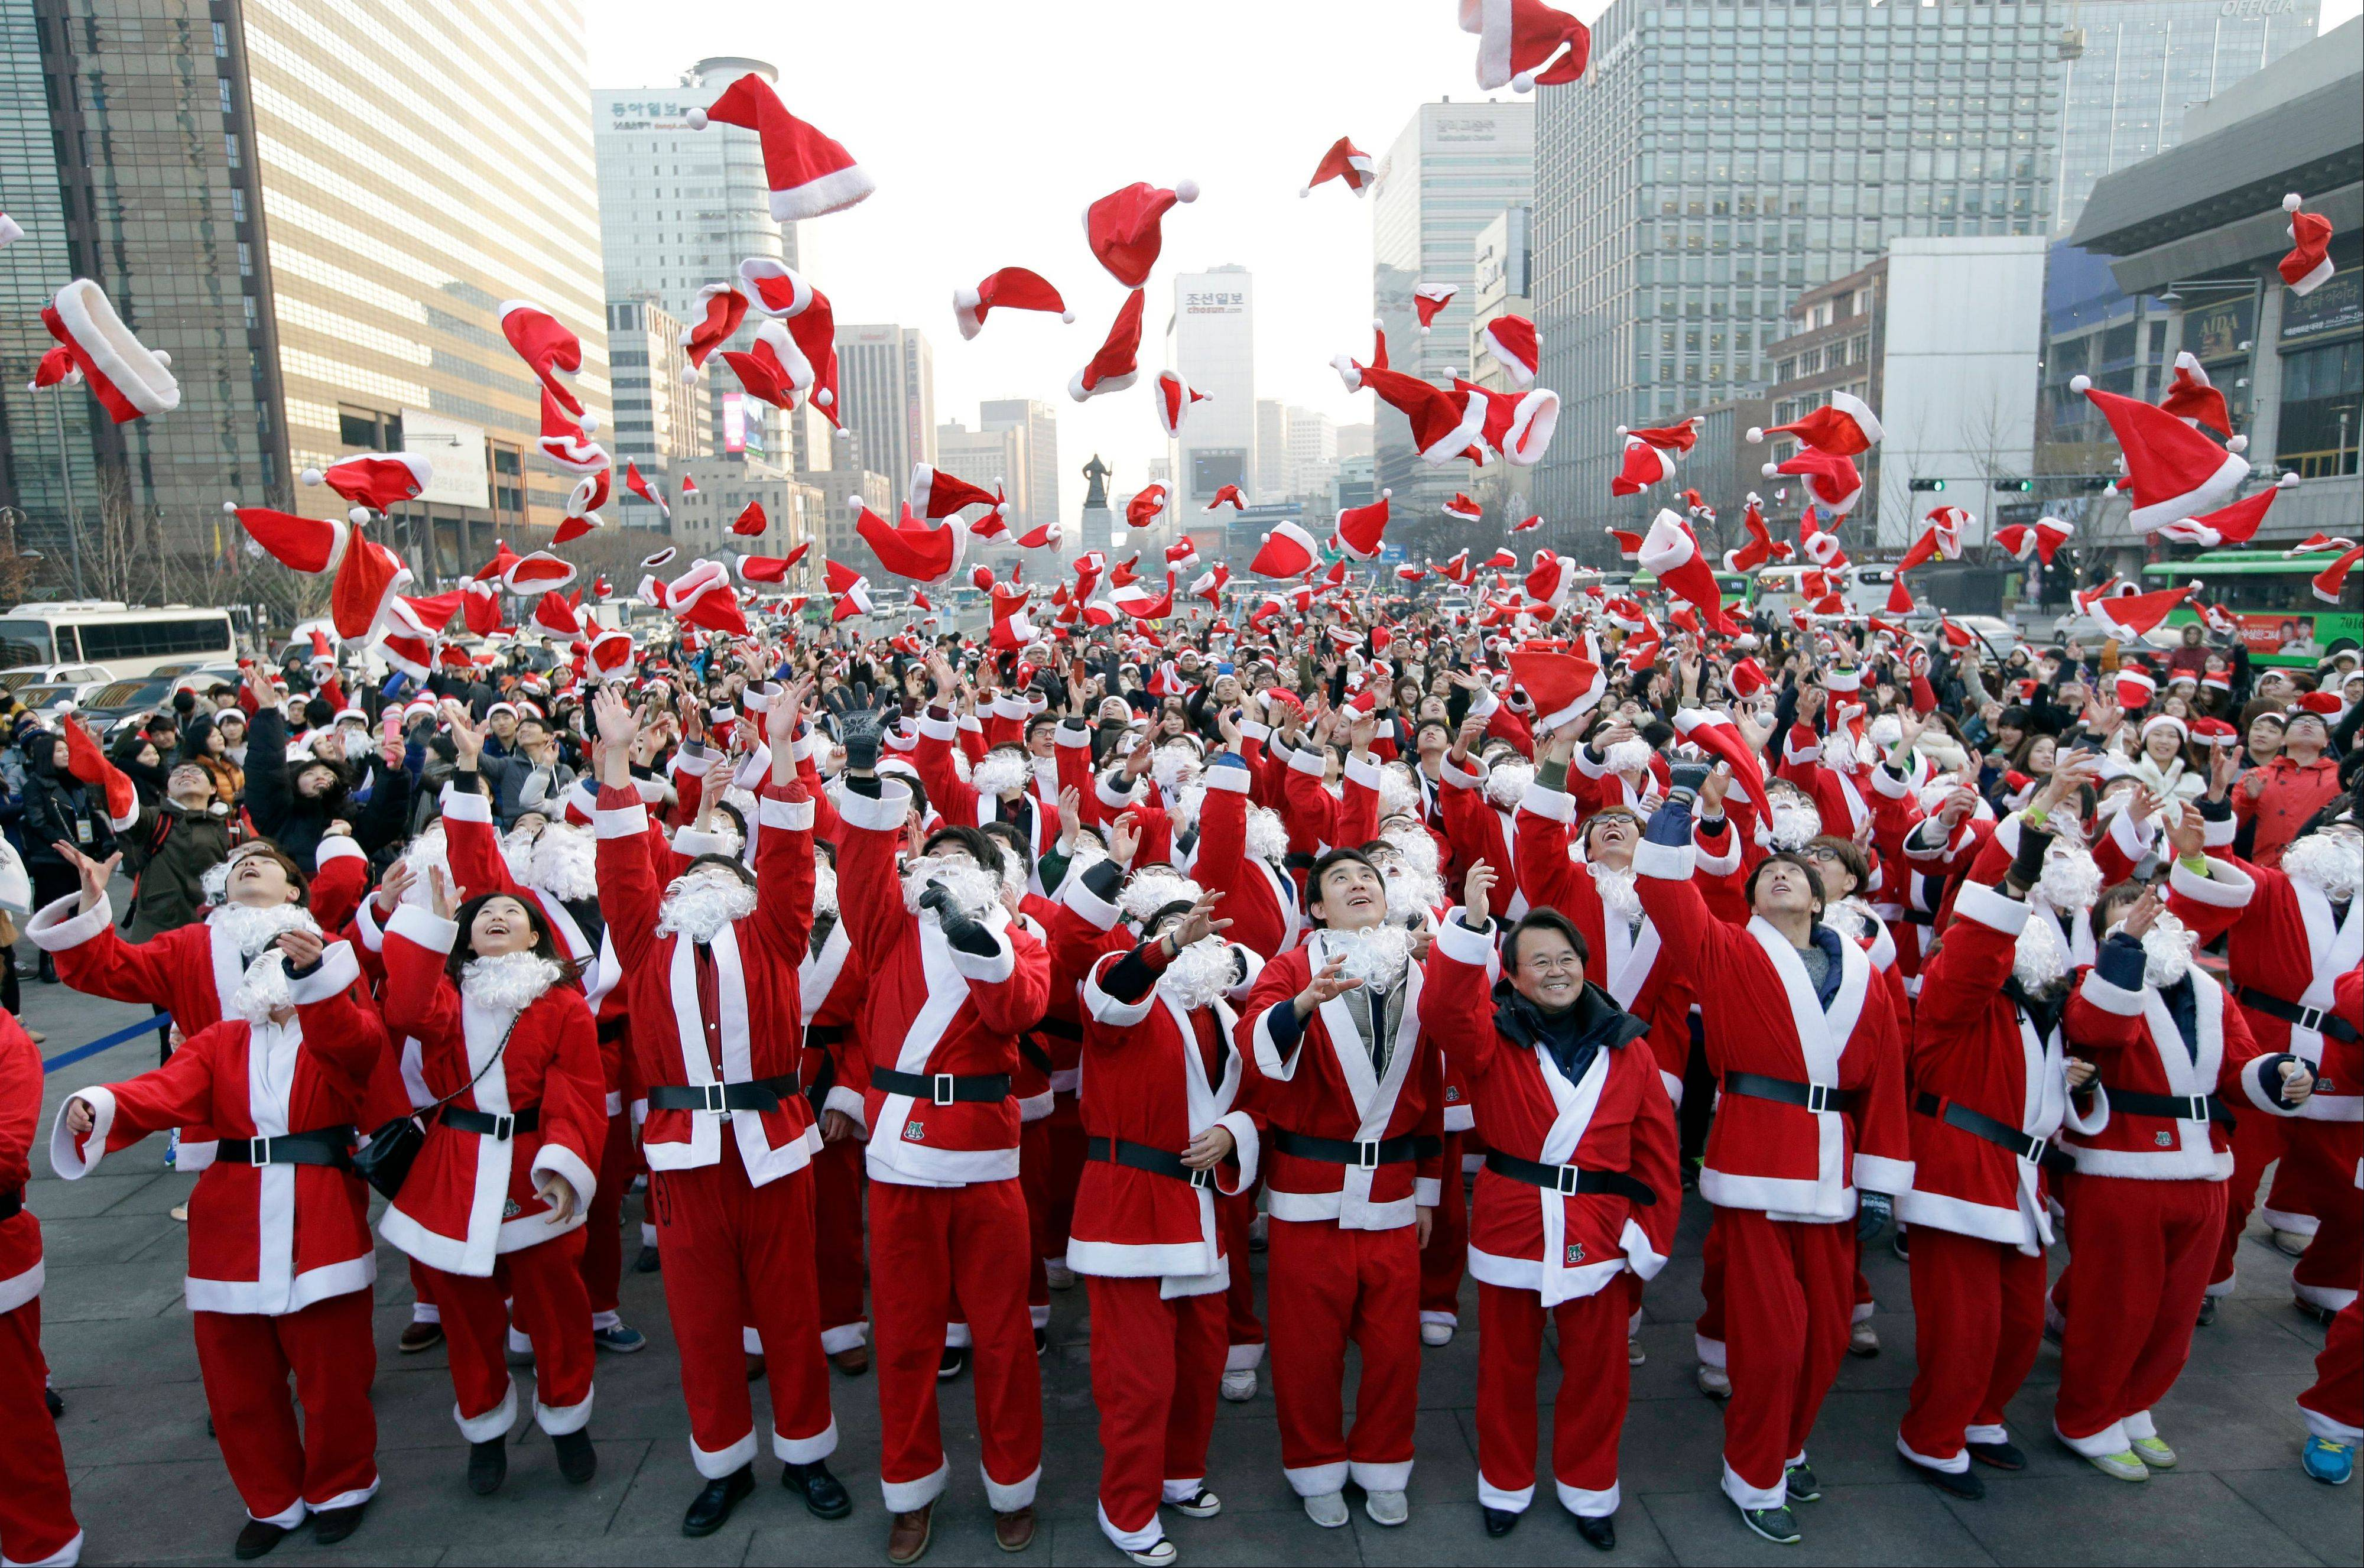 More than 1,000 volunteers clad in Santa Claus costumes throw their hats in the air as they gather to deliver gifts for the poor in downtown Seoul, South Korea, Tuesday, Dec. 24, 2013.